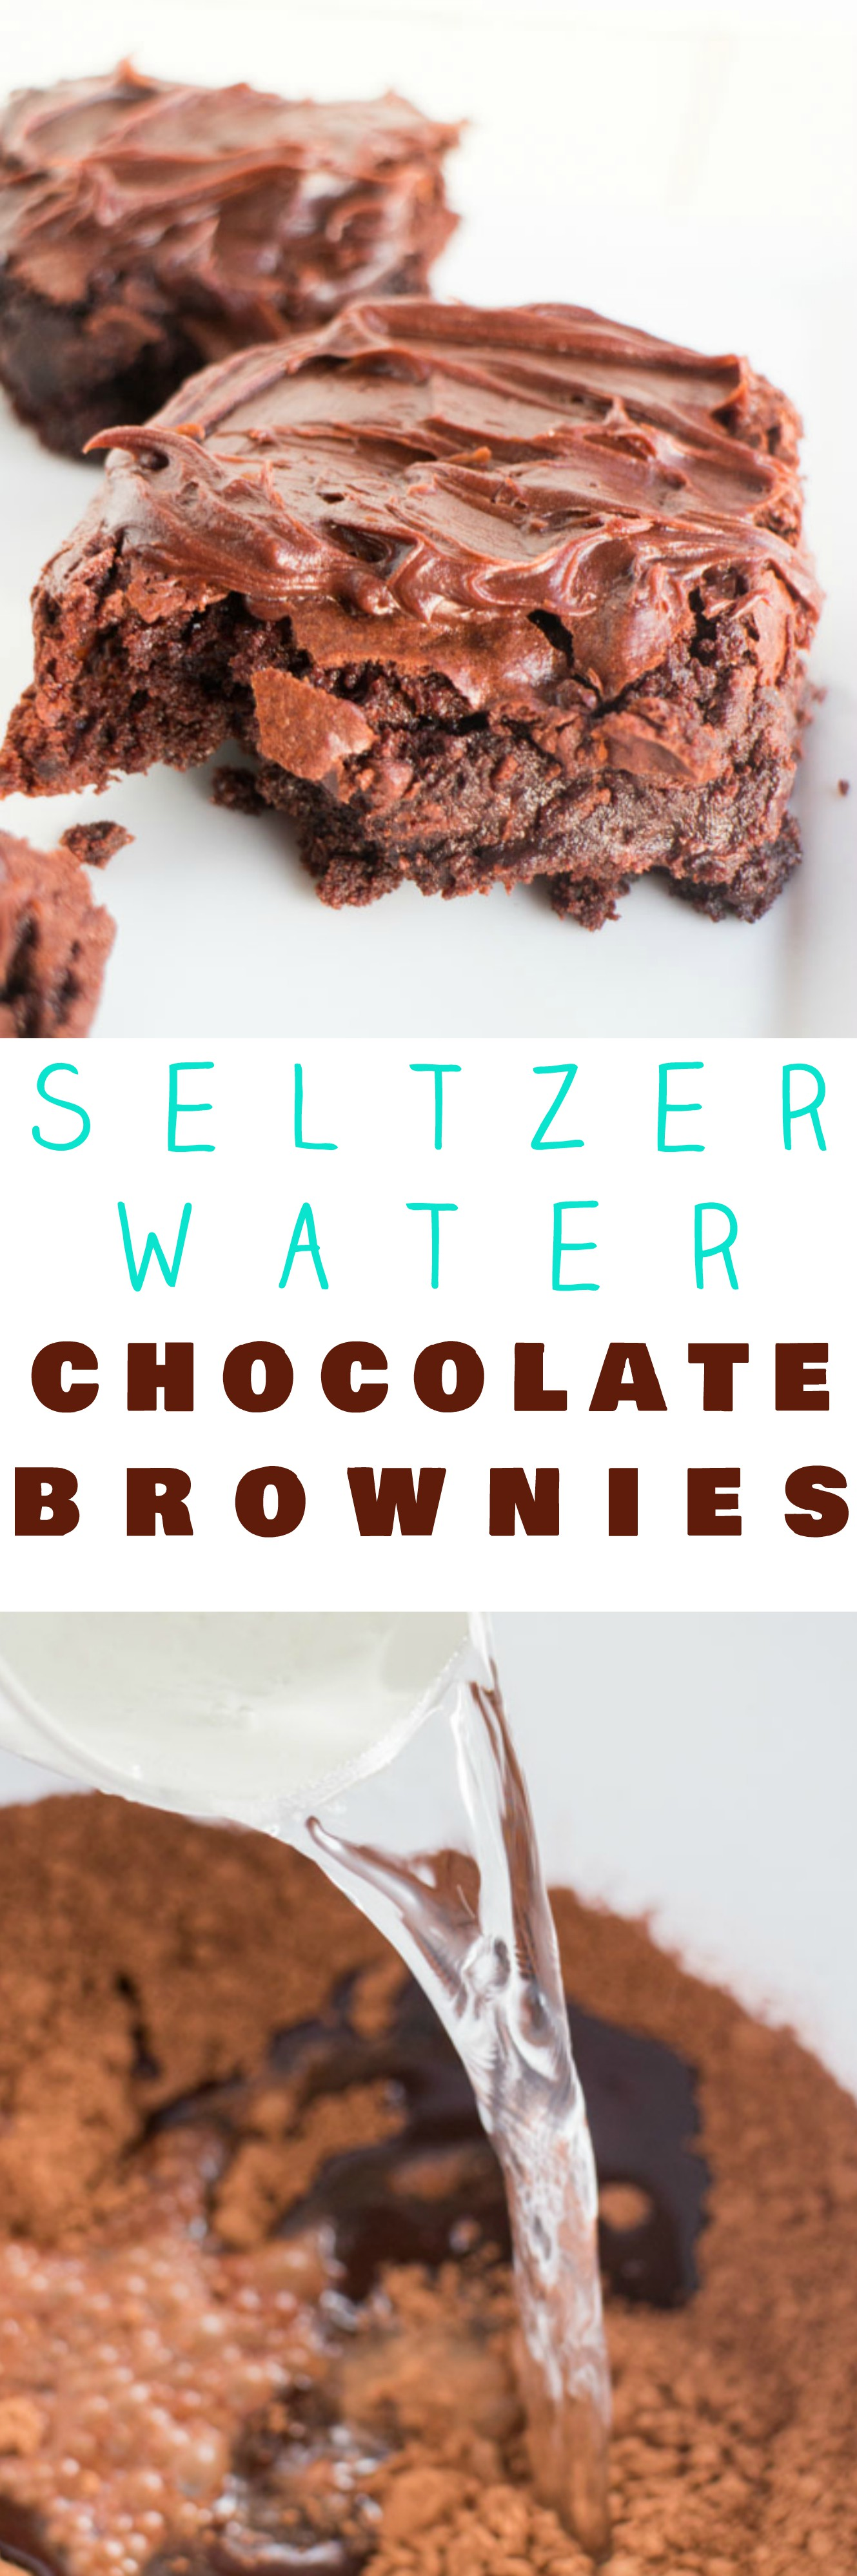 Delicious recipe for fudgy chocolate brownies made with seltzer water!   The seltzer water helps make the brownies extra fluffy!